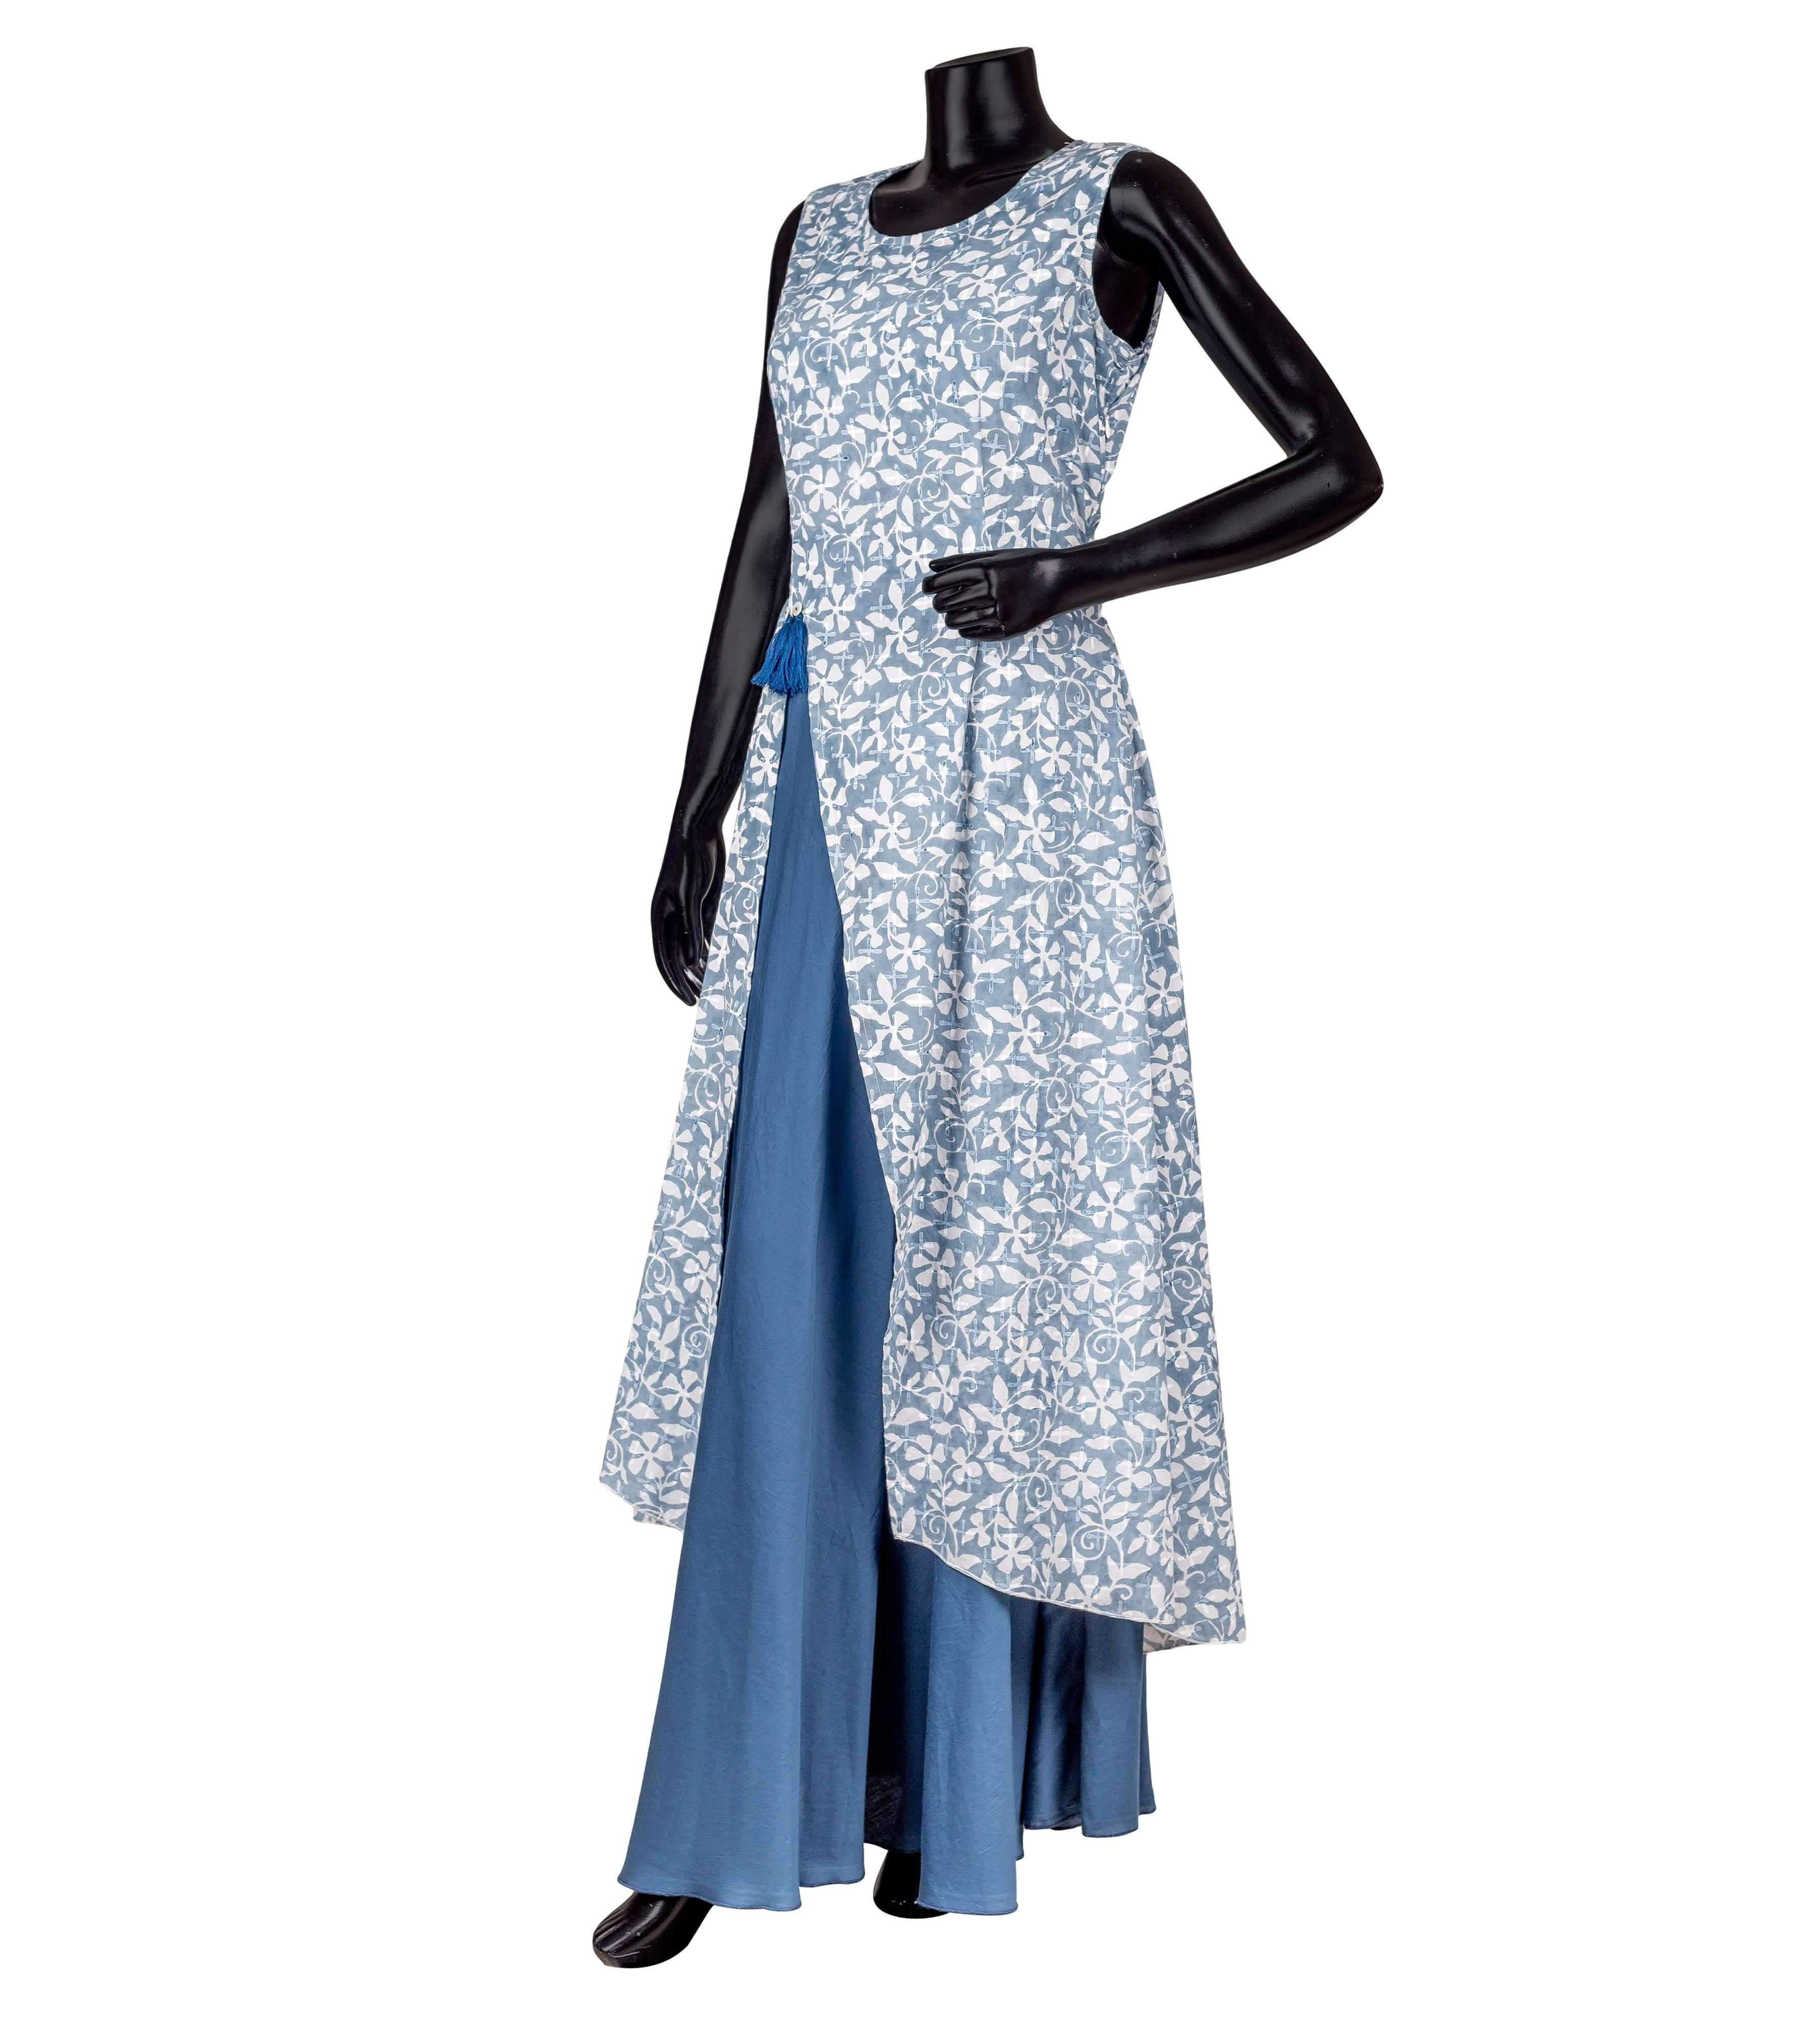 wholesale suppliers of womens clothing in india